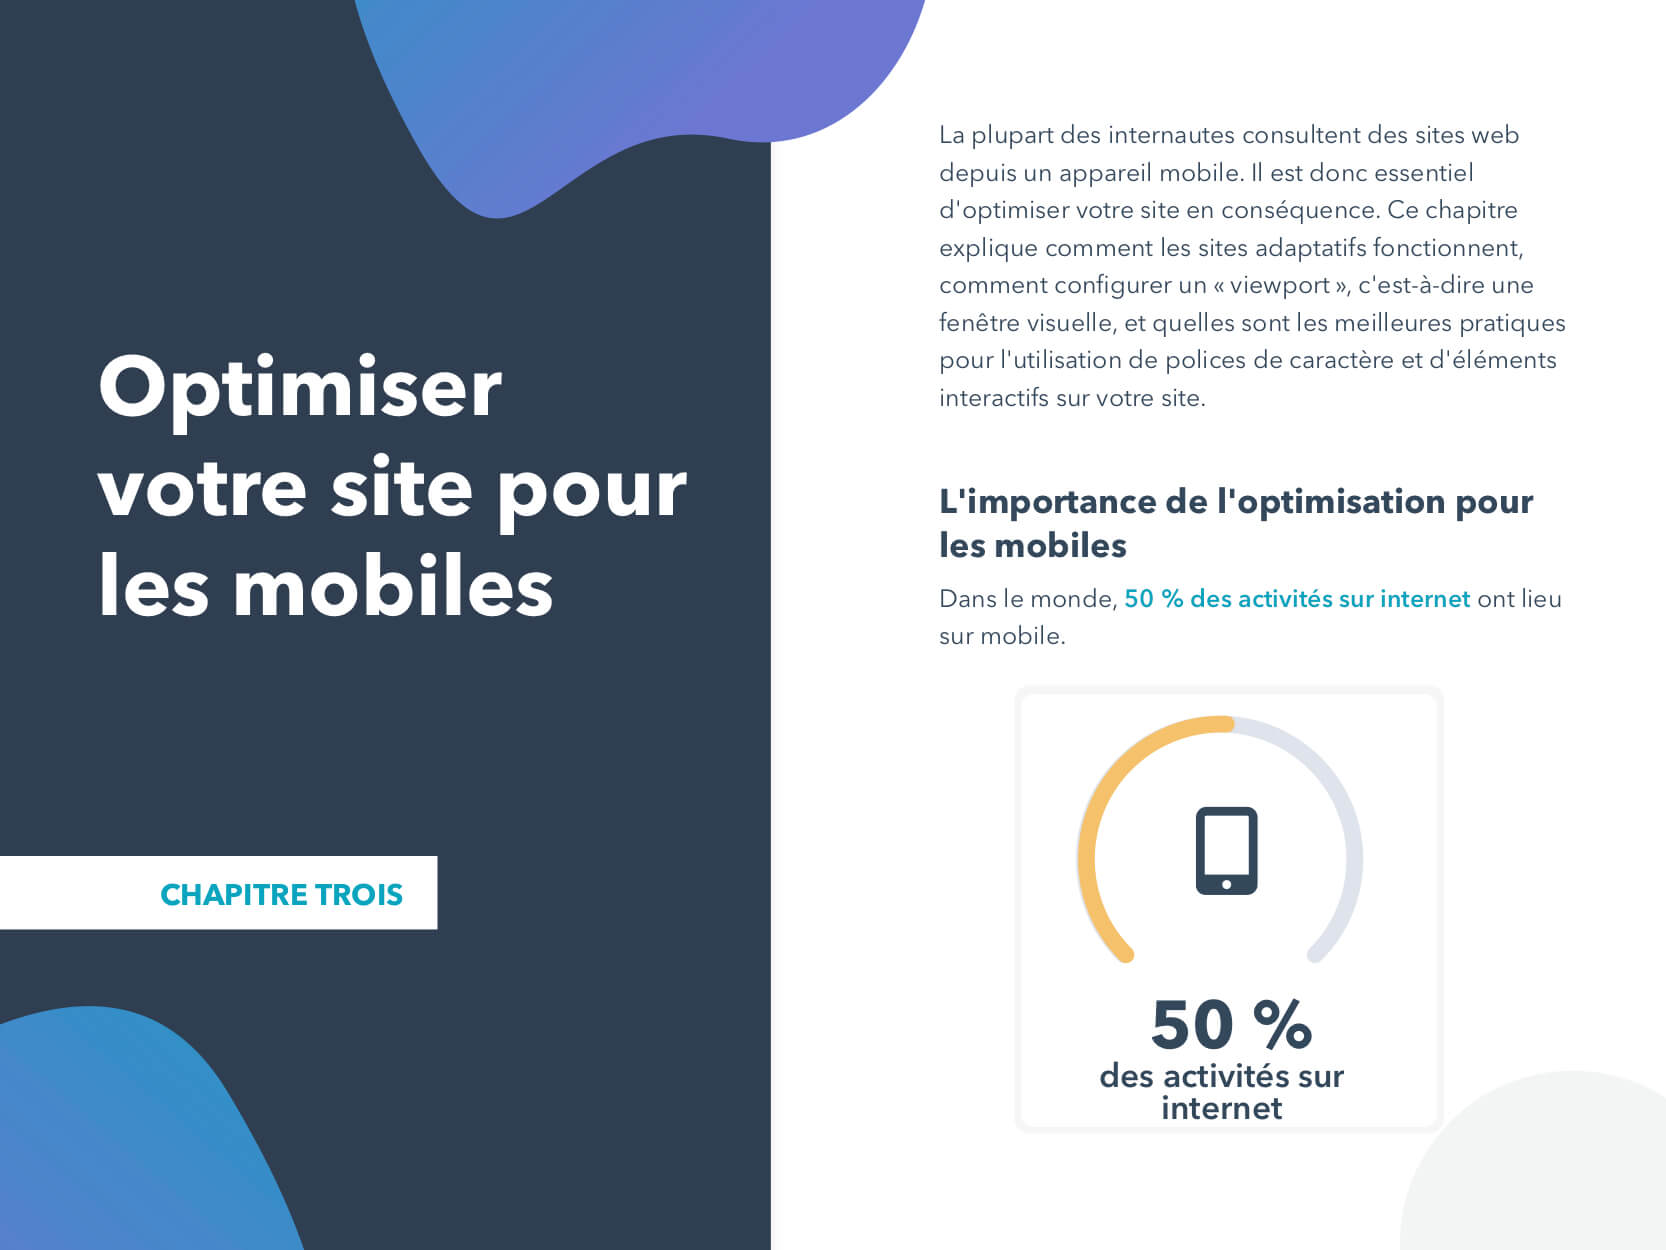 Optimiser la performance de votre site web ch3